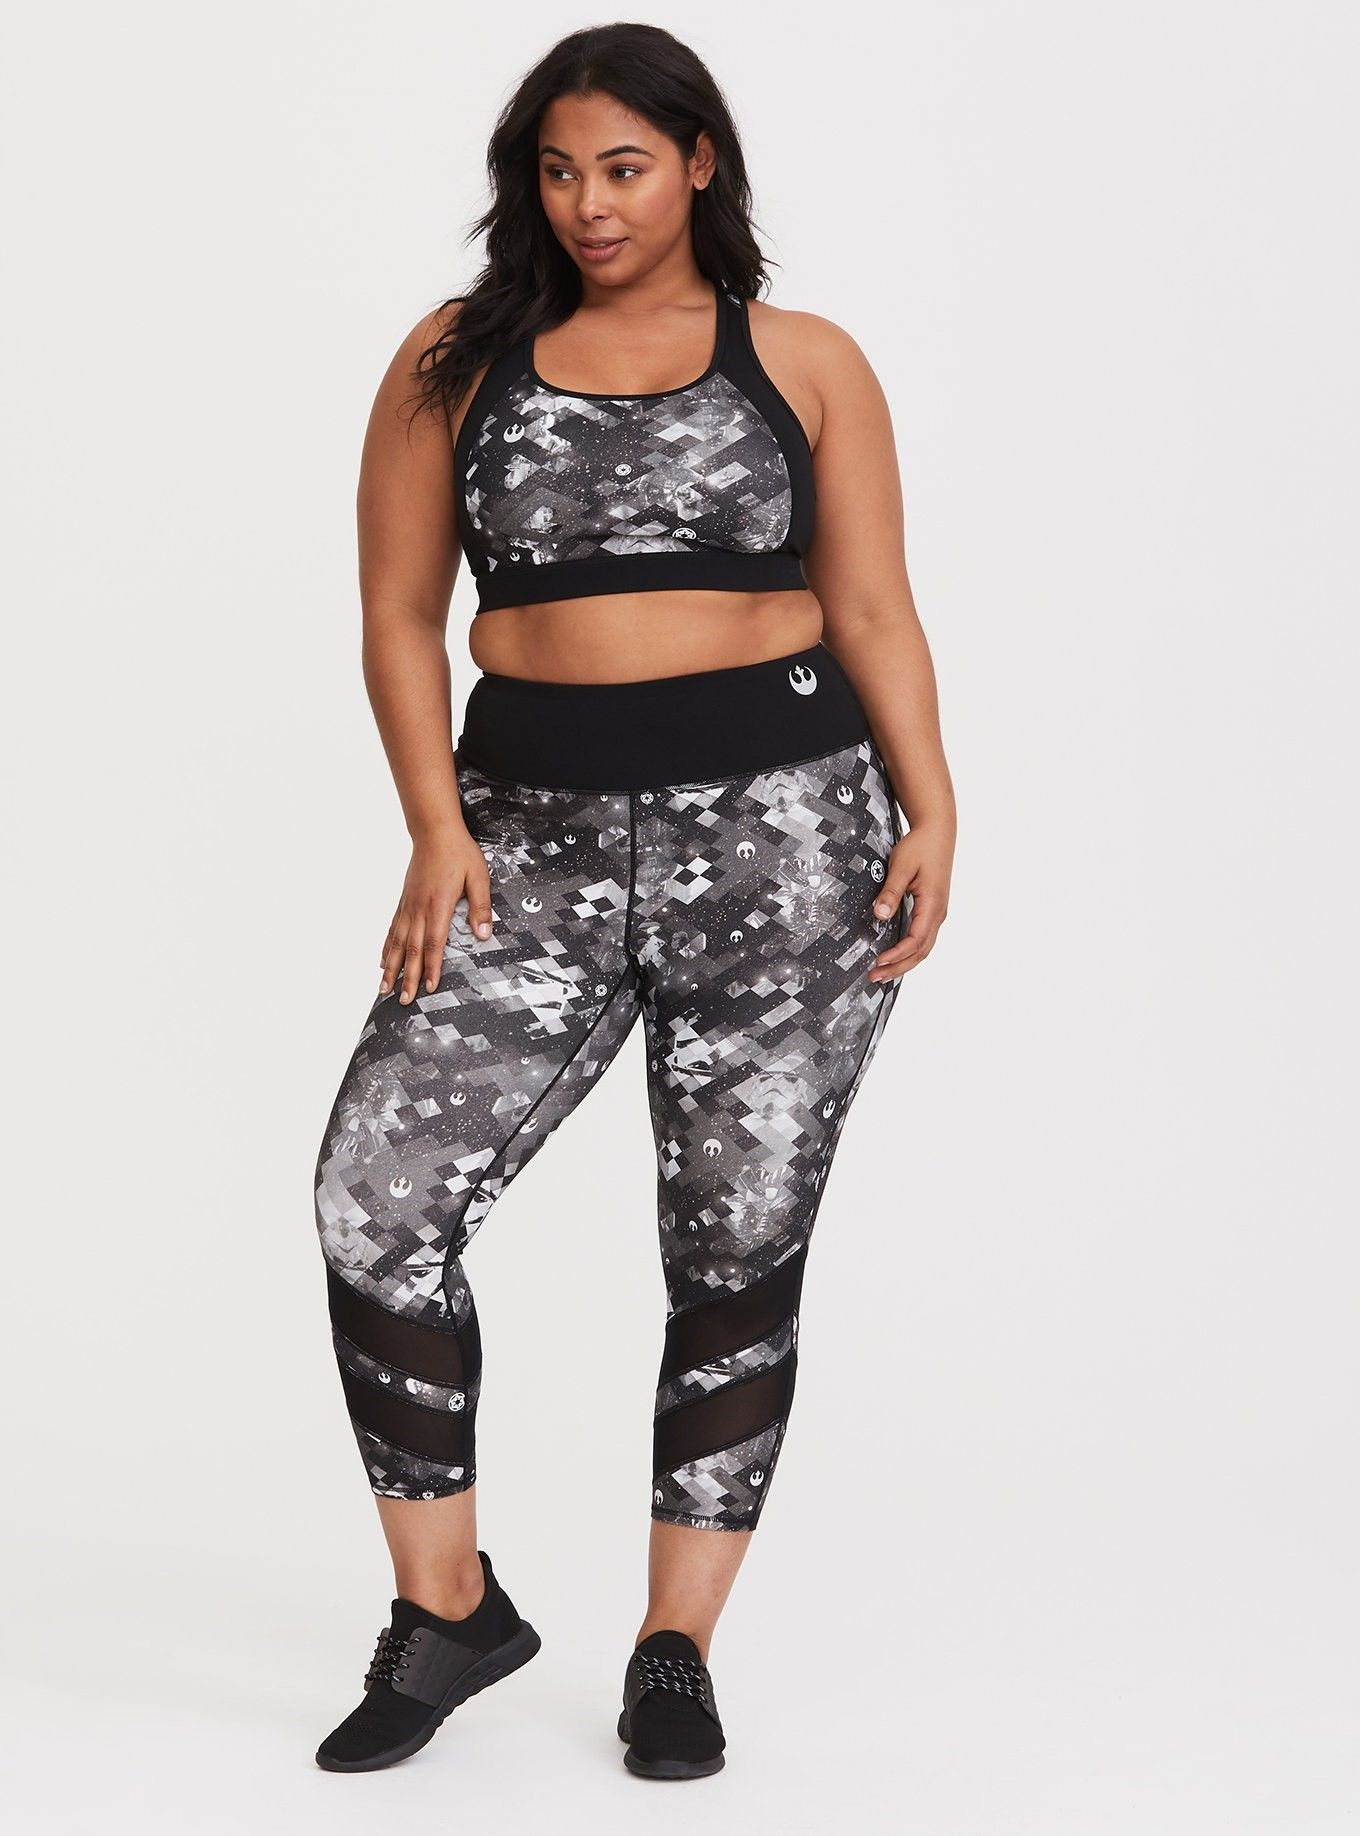 97700dc713277 Star Wars Sports Bra - Be one with the force in a monochromatic Star Wars  design with solid black paneling and 4-way stretch technology. Sizes 10-30